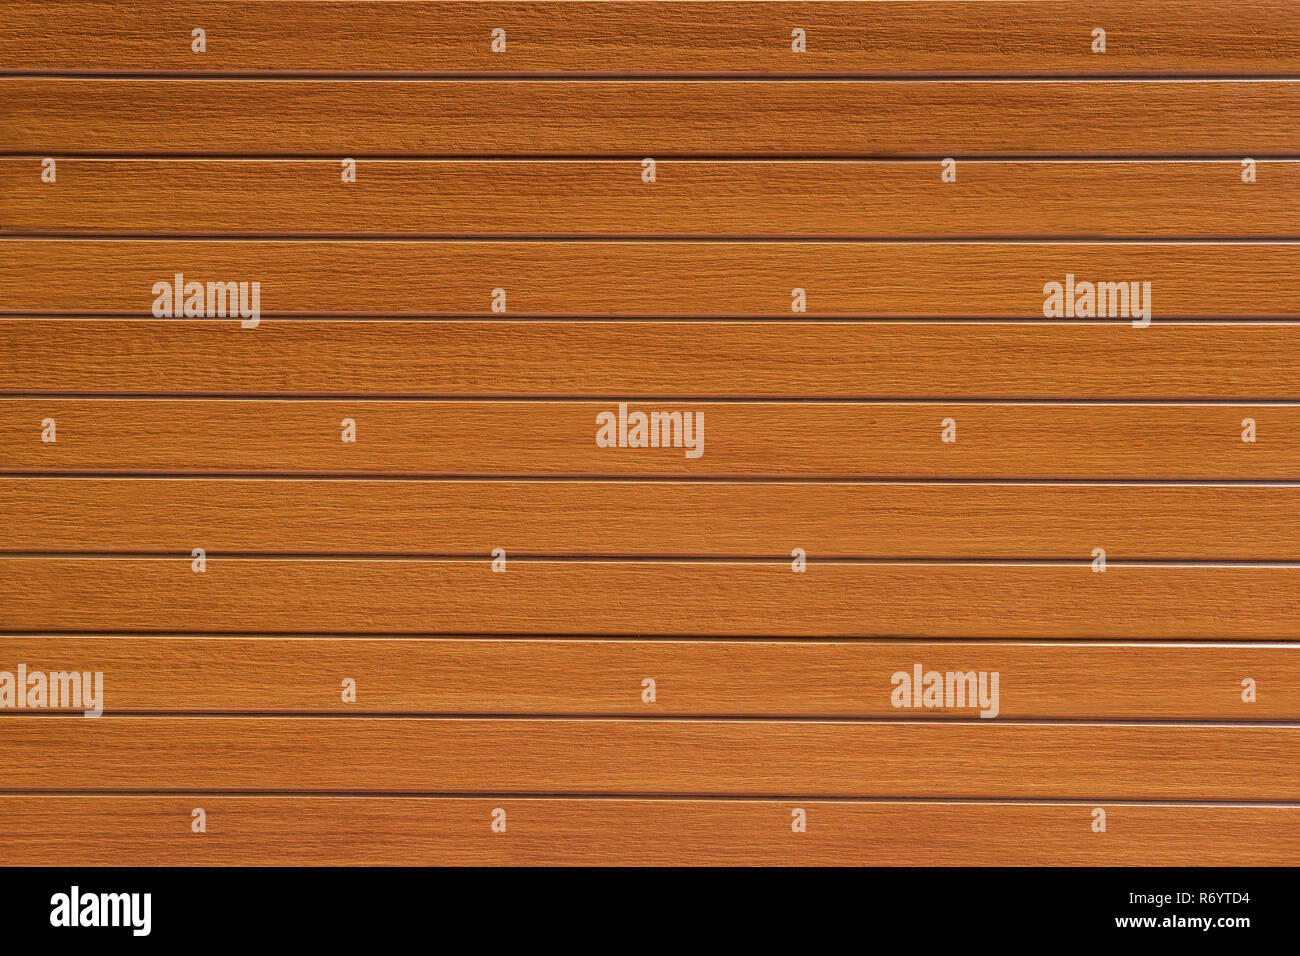 Brown wooden background. Closeup wooden table texture. - Stock Image